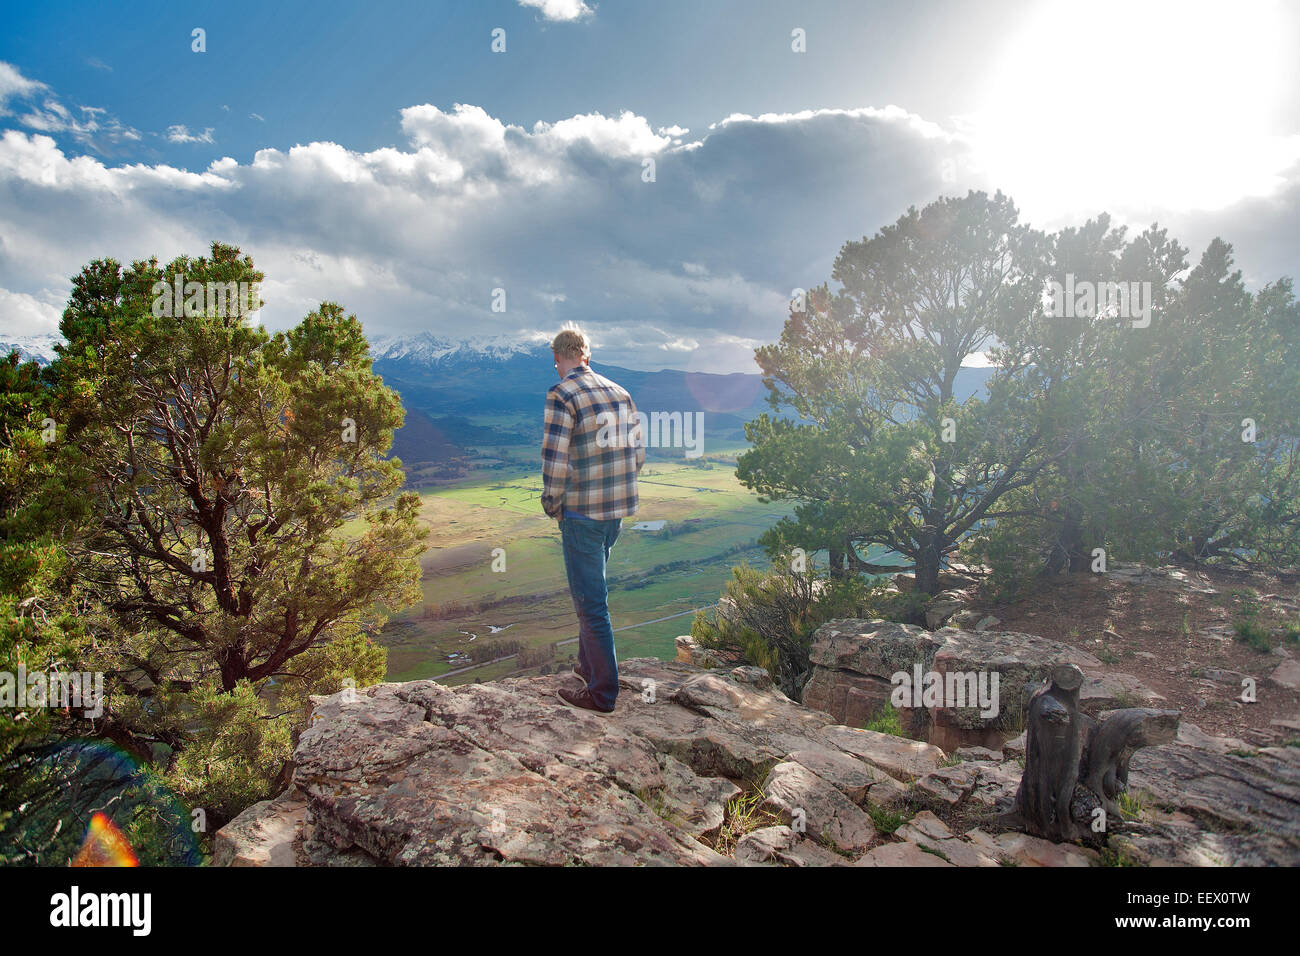 Jonathan Brittain in Ridgway, Colorado - Stock Image